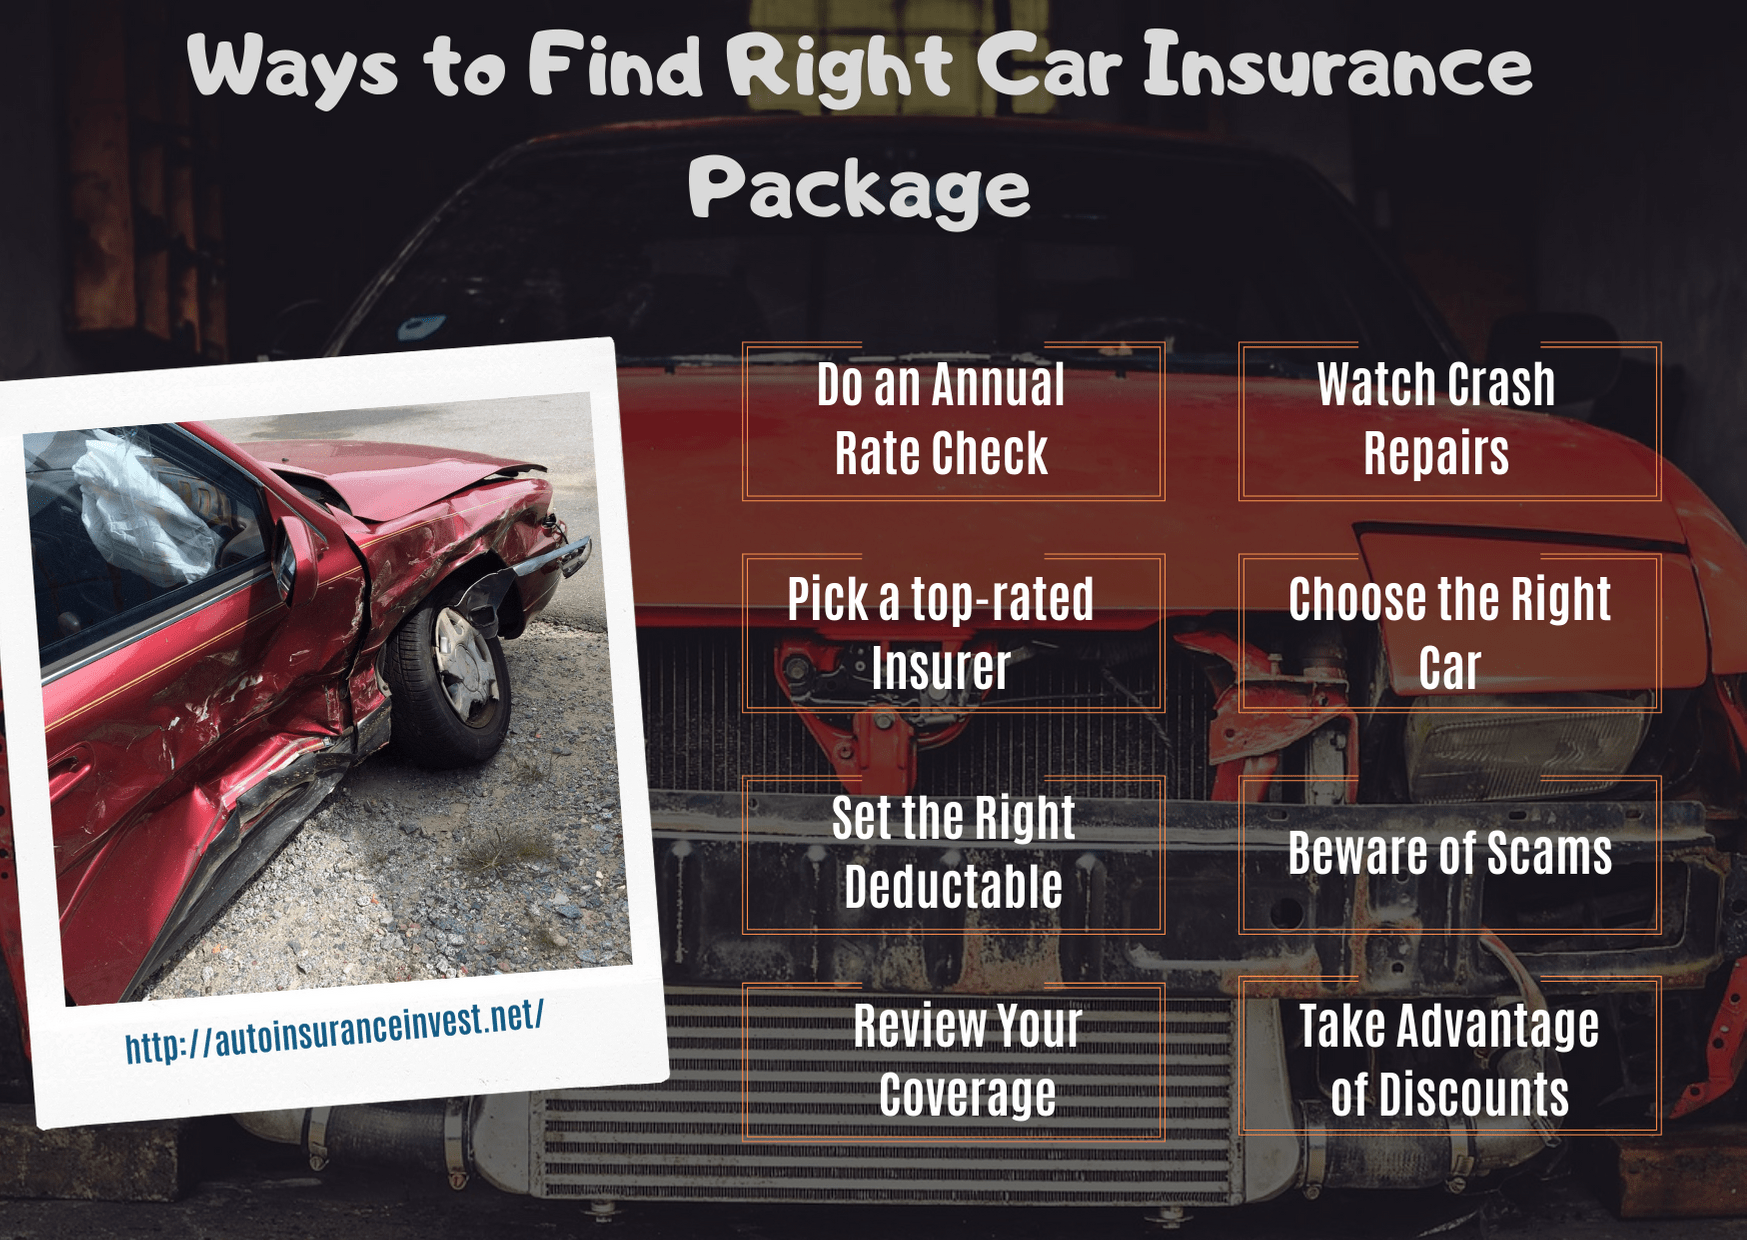 Ways to Find Right Car Insurance Package